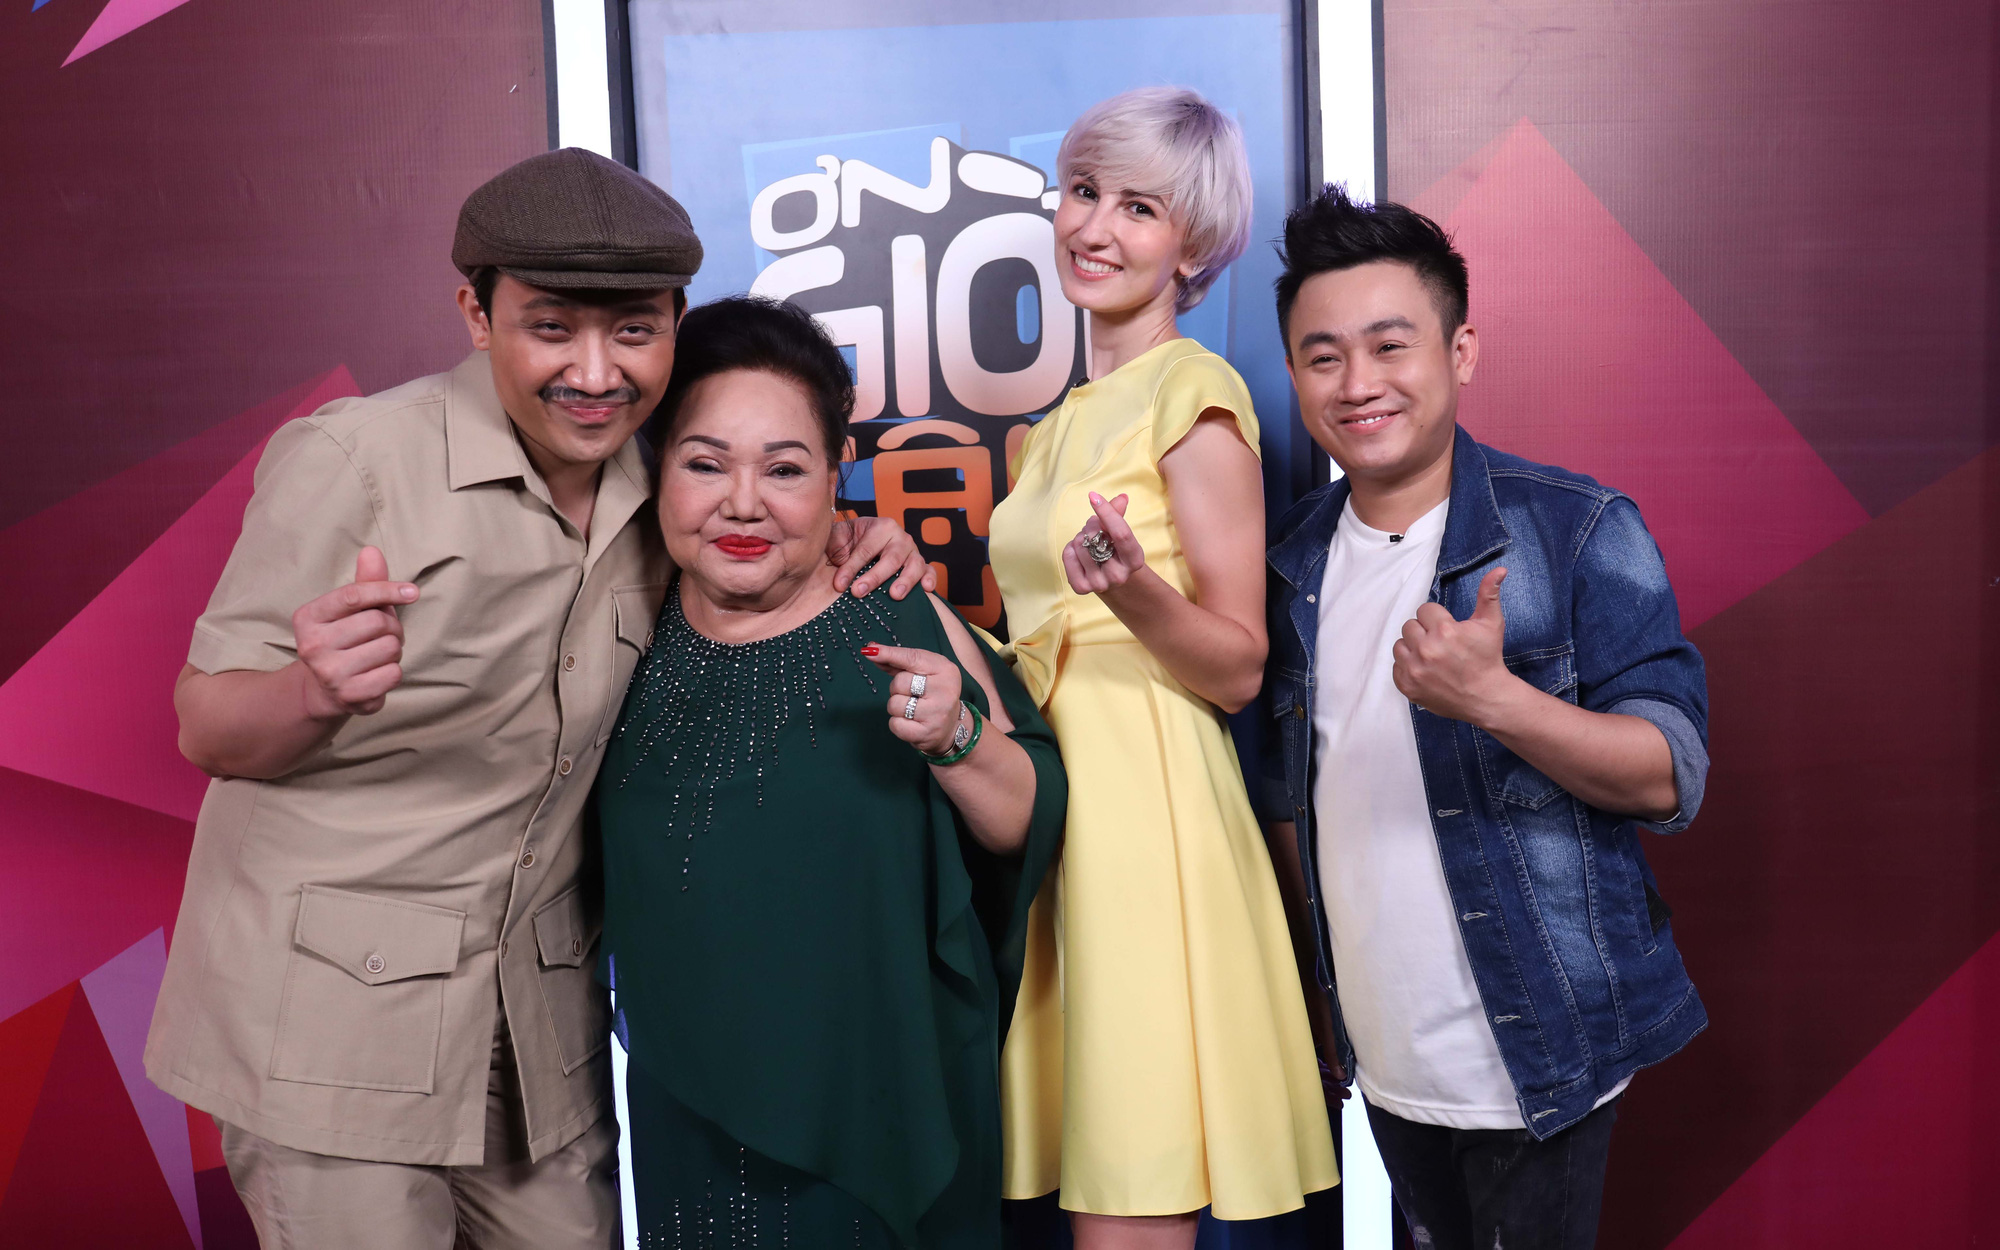 Micka Chu (second right) appears on the television show 'Thank God You're Here' on Vietnamese national television in this supplied photo.